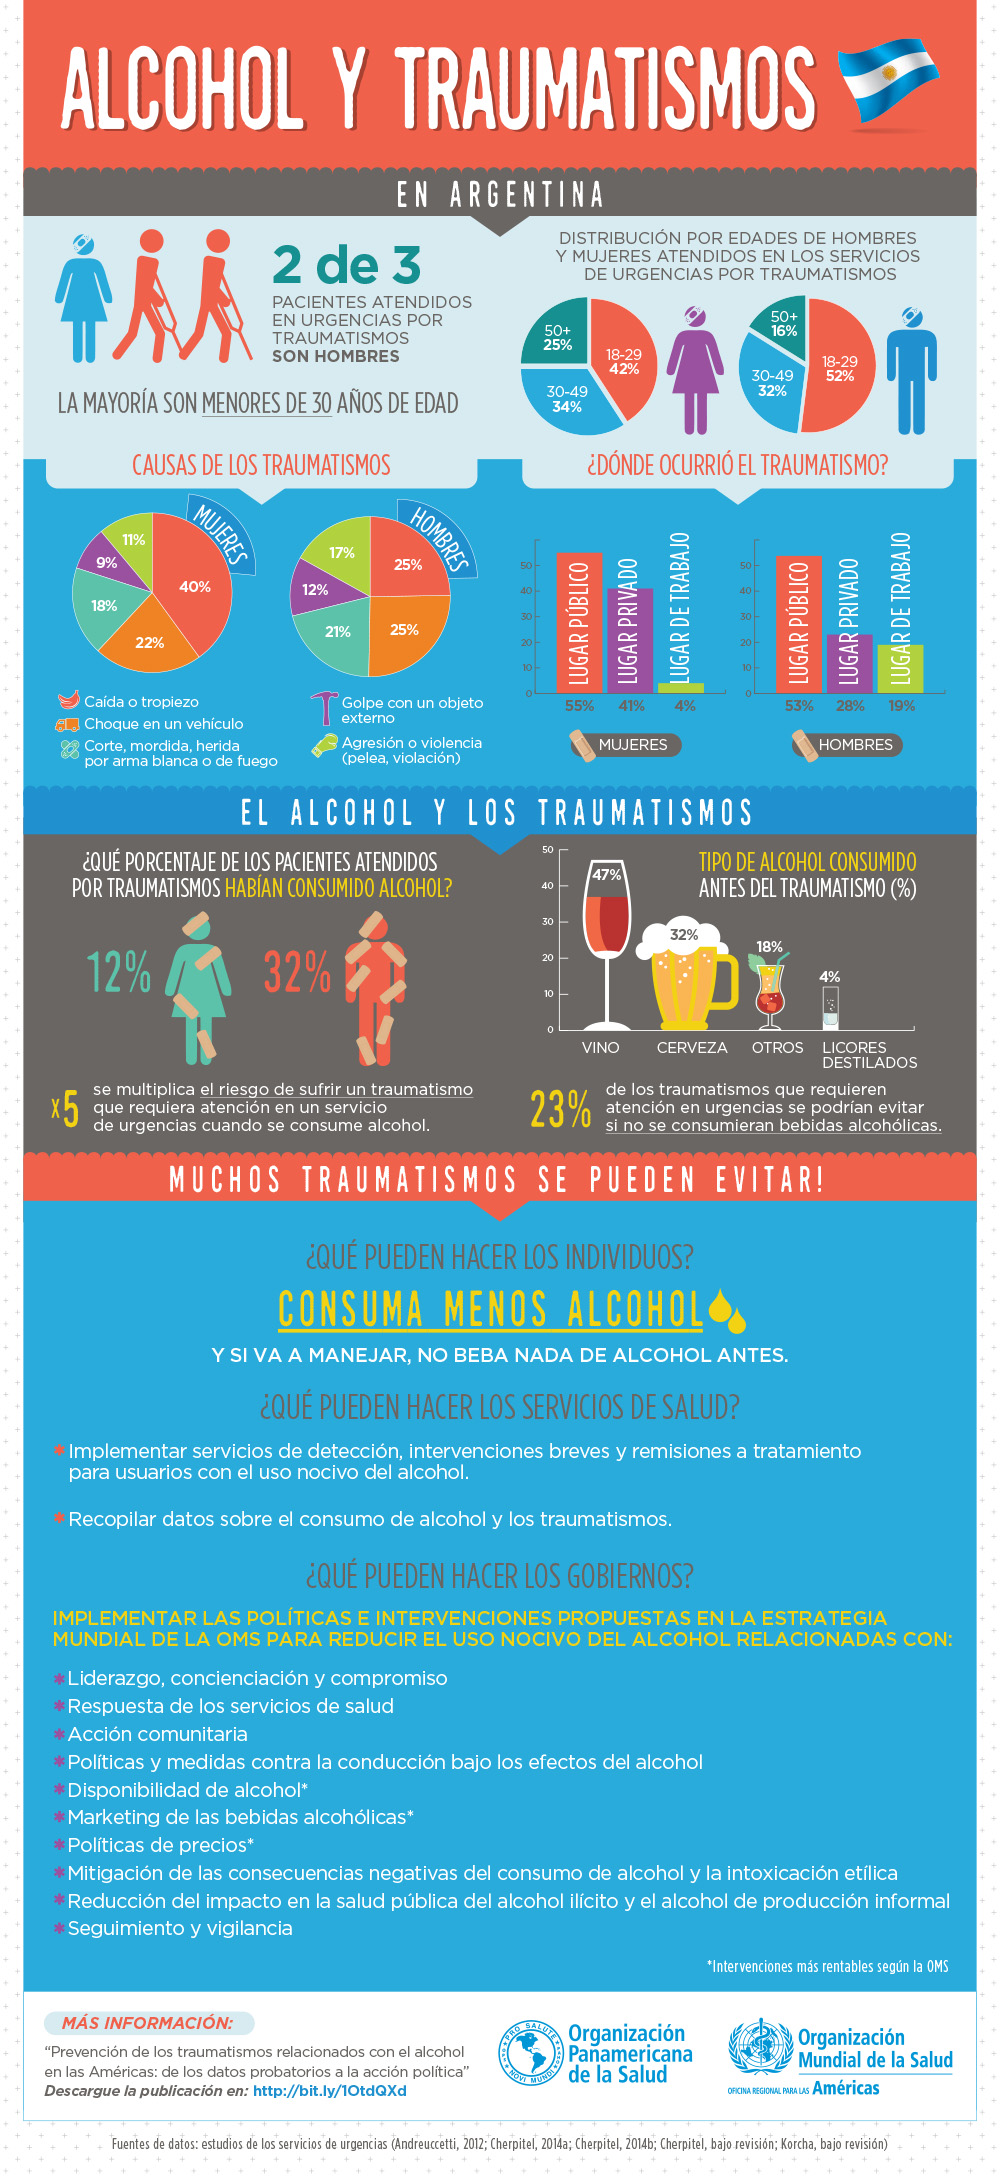 Alcohol y Traumatismos infographic PAHO Argentina.jpg